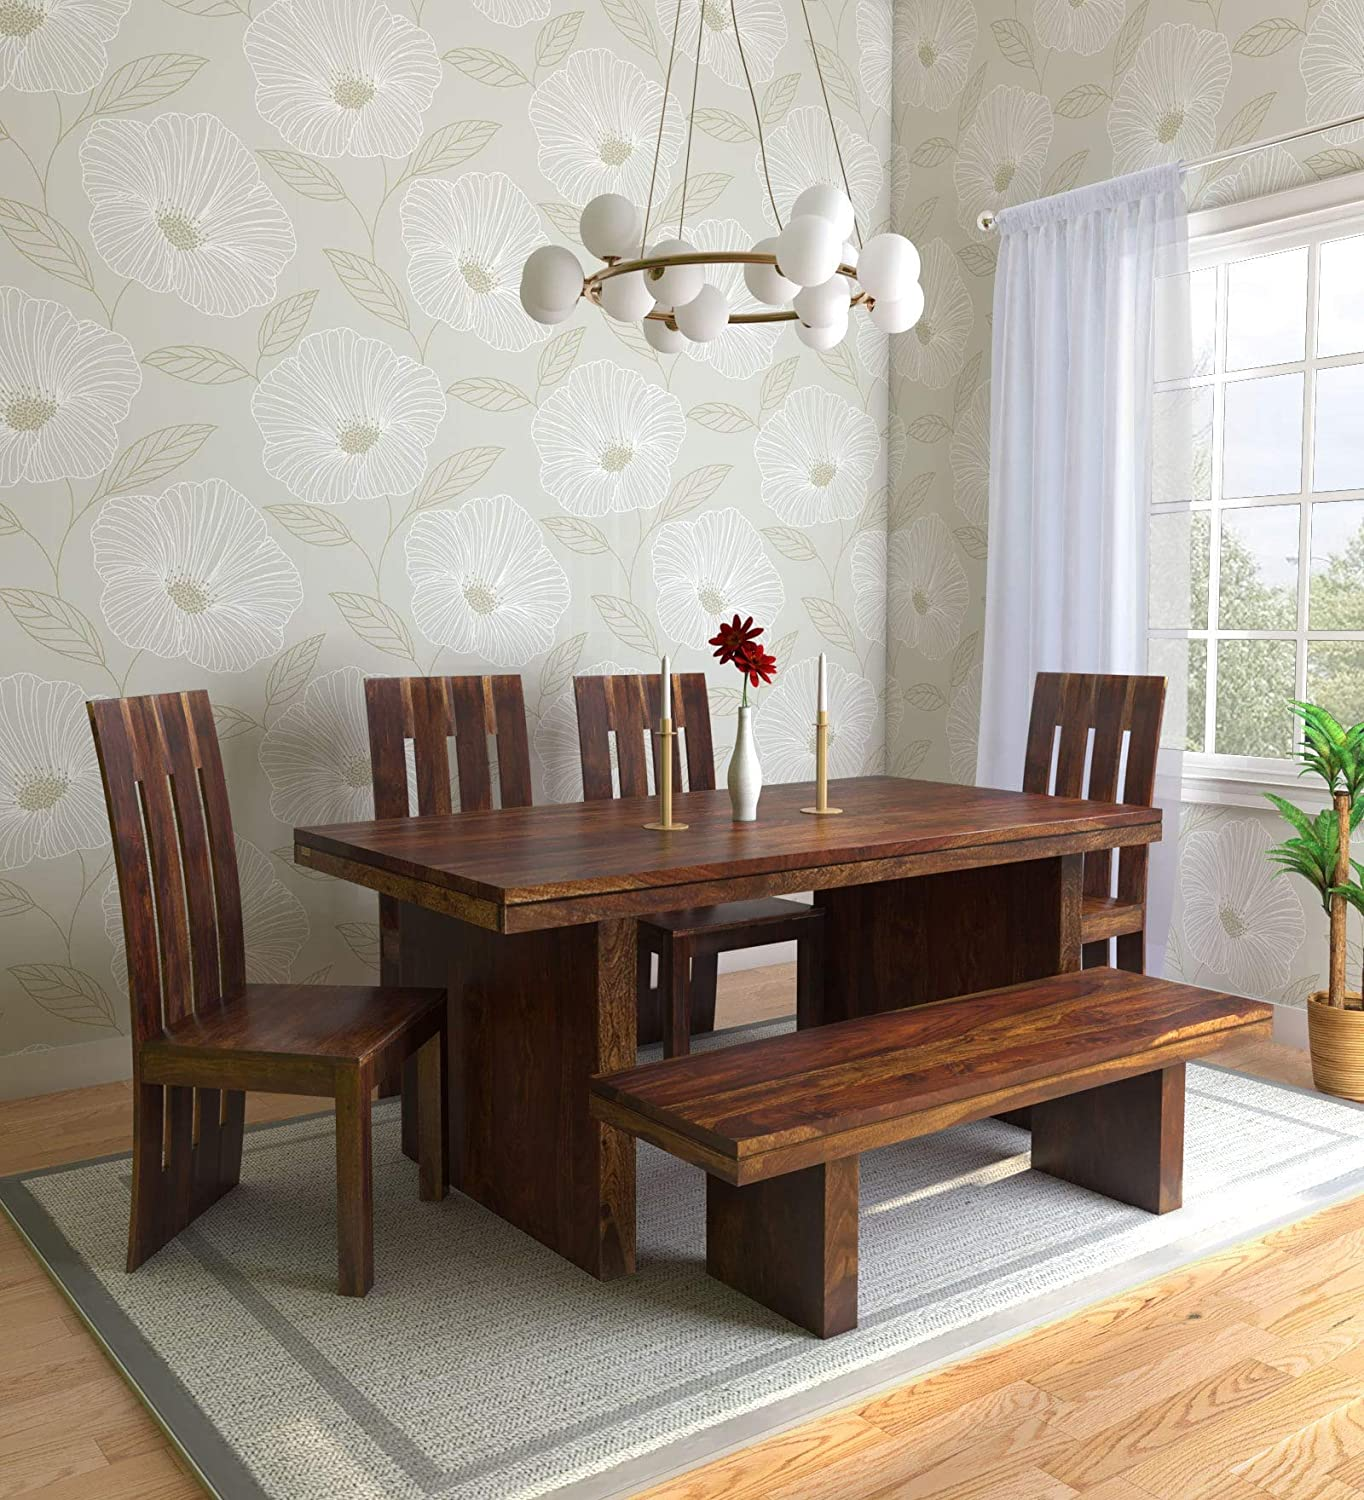 Nisha Furniture Sheesham Wooden Dining Table 6 Seater Dining Table Set With 4 Chairs 1 Bench Home Dining Room Furniture Honey Brown Finish Amazon In Home Kitchen